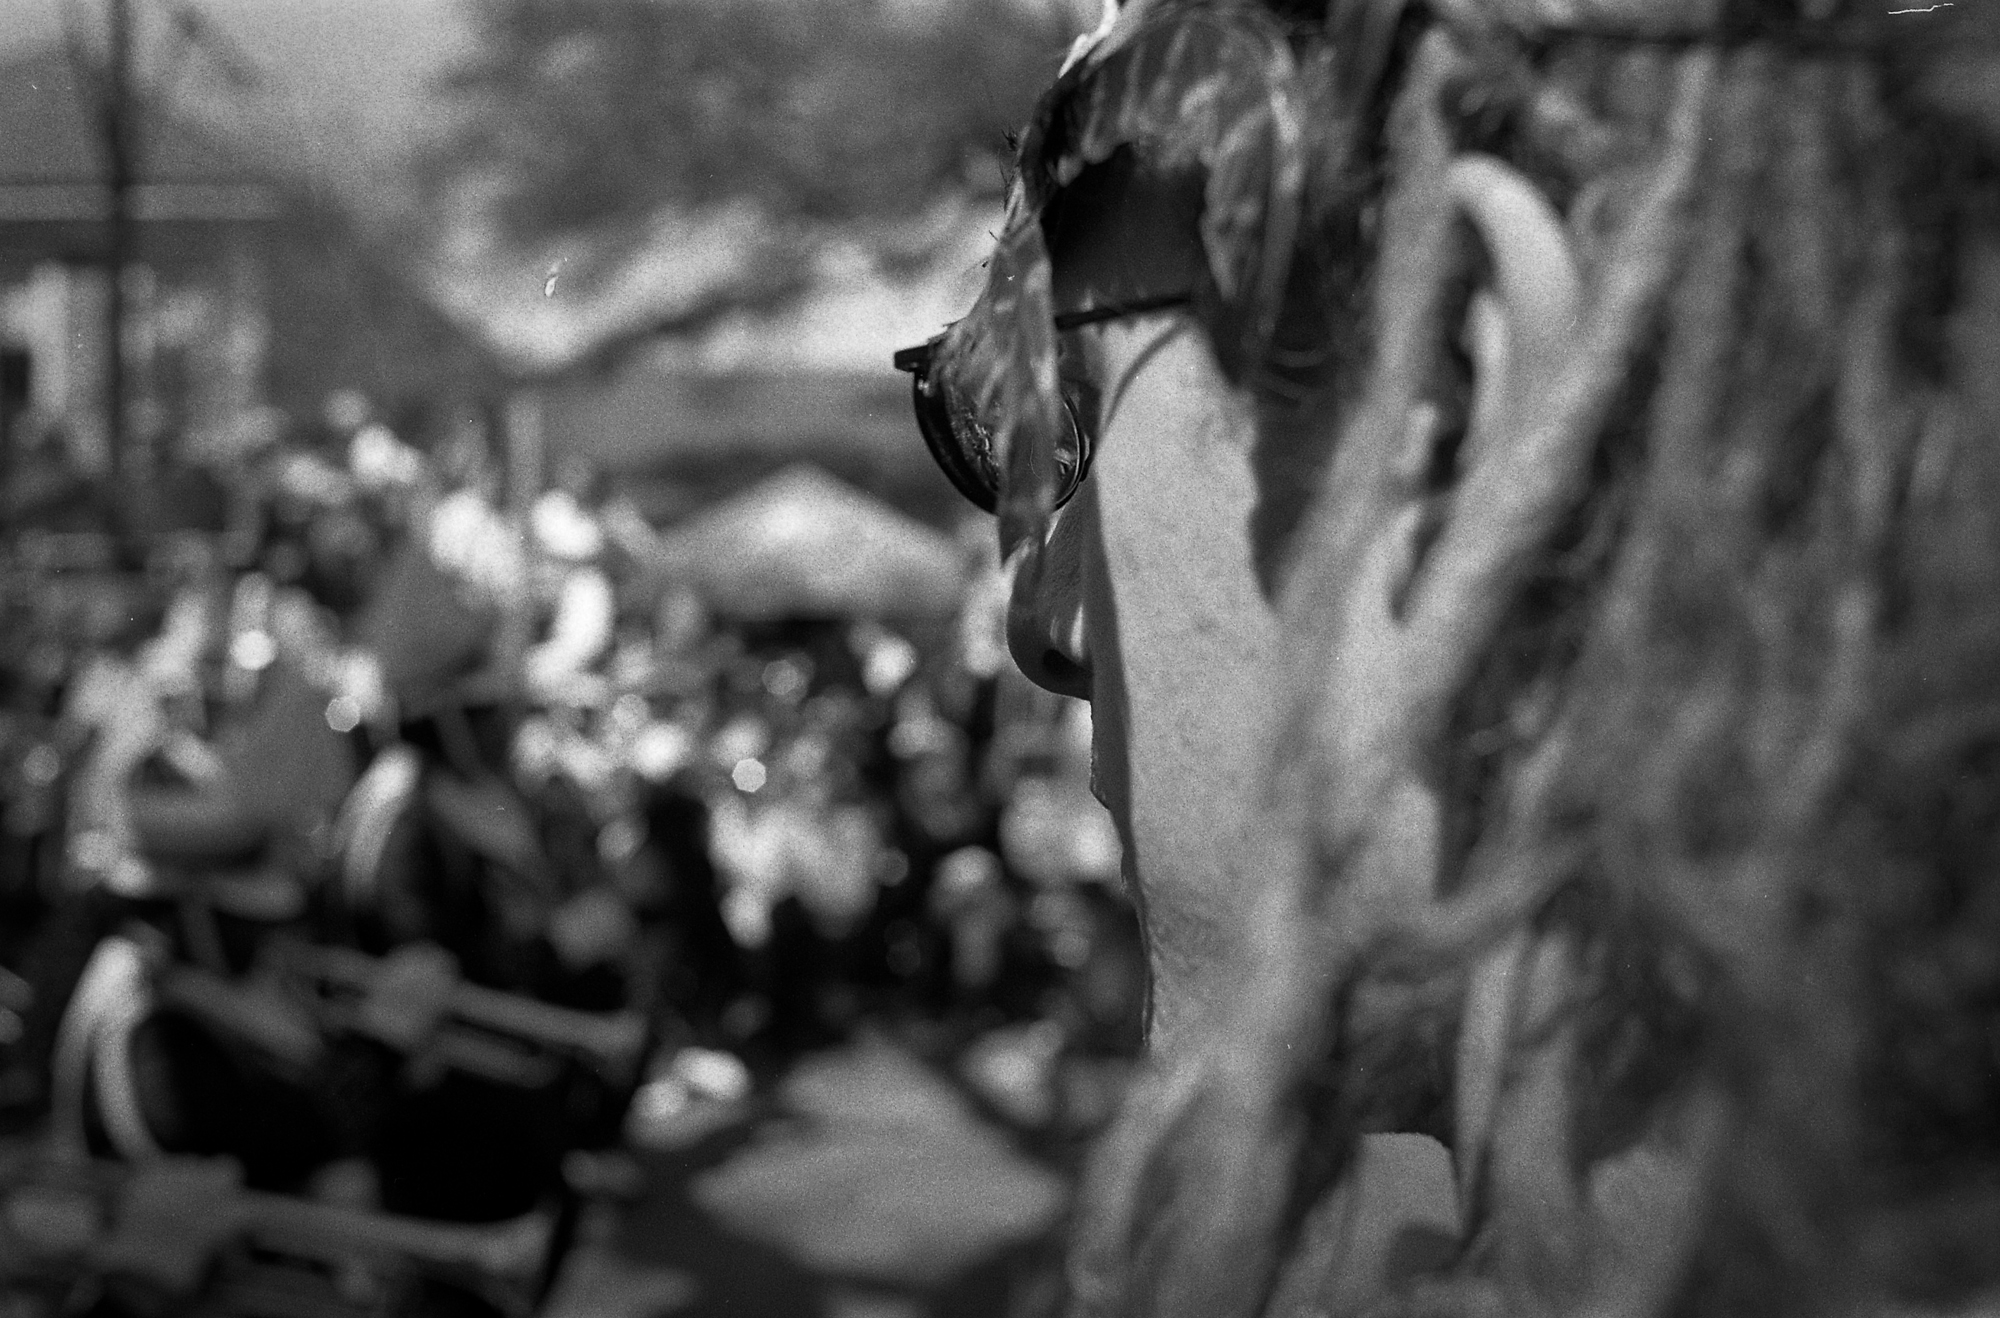 Parade watcher.     New Orleans, LA.  2010  35 mm B&W film.